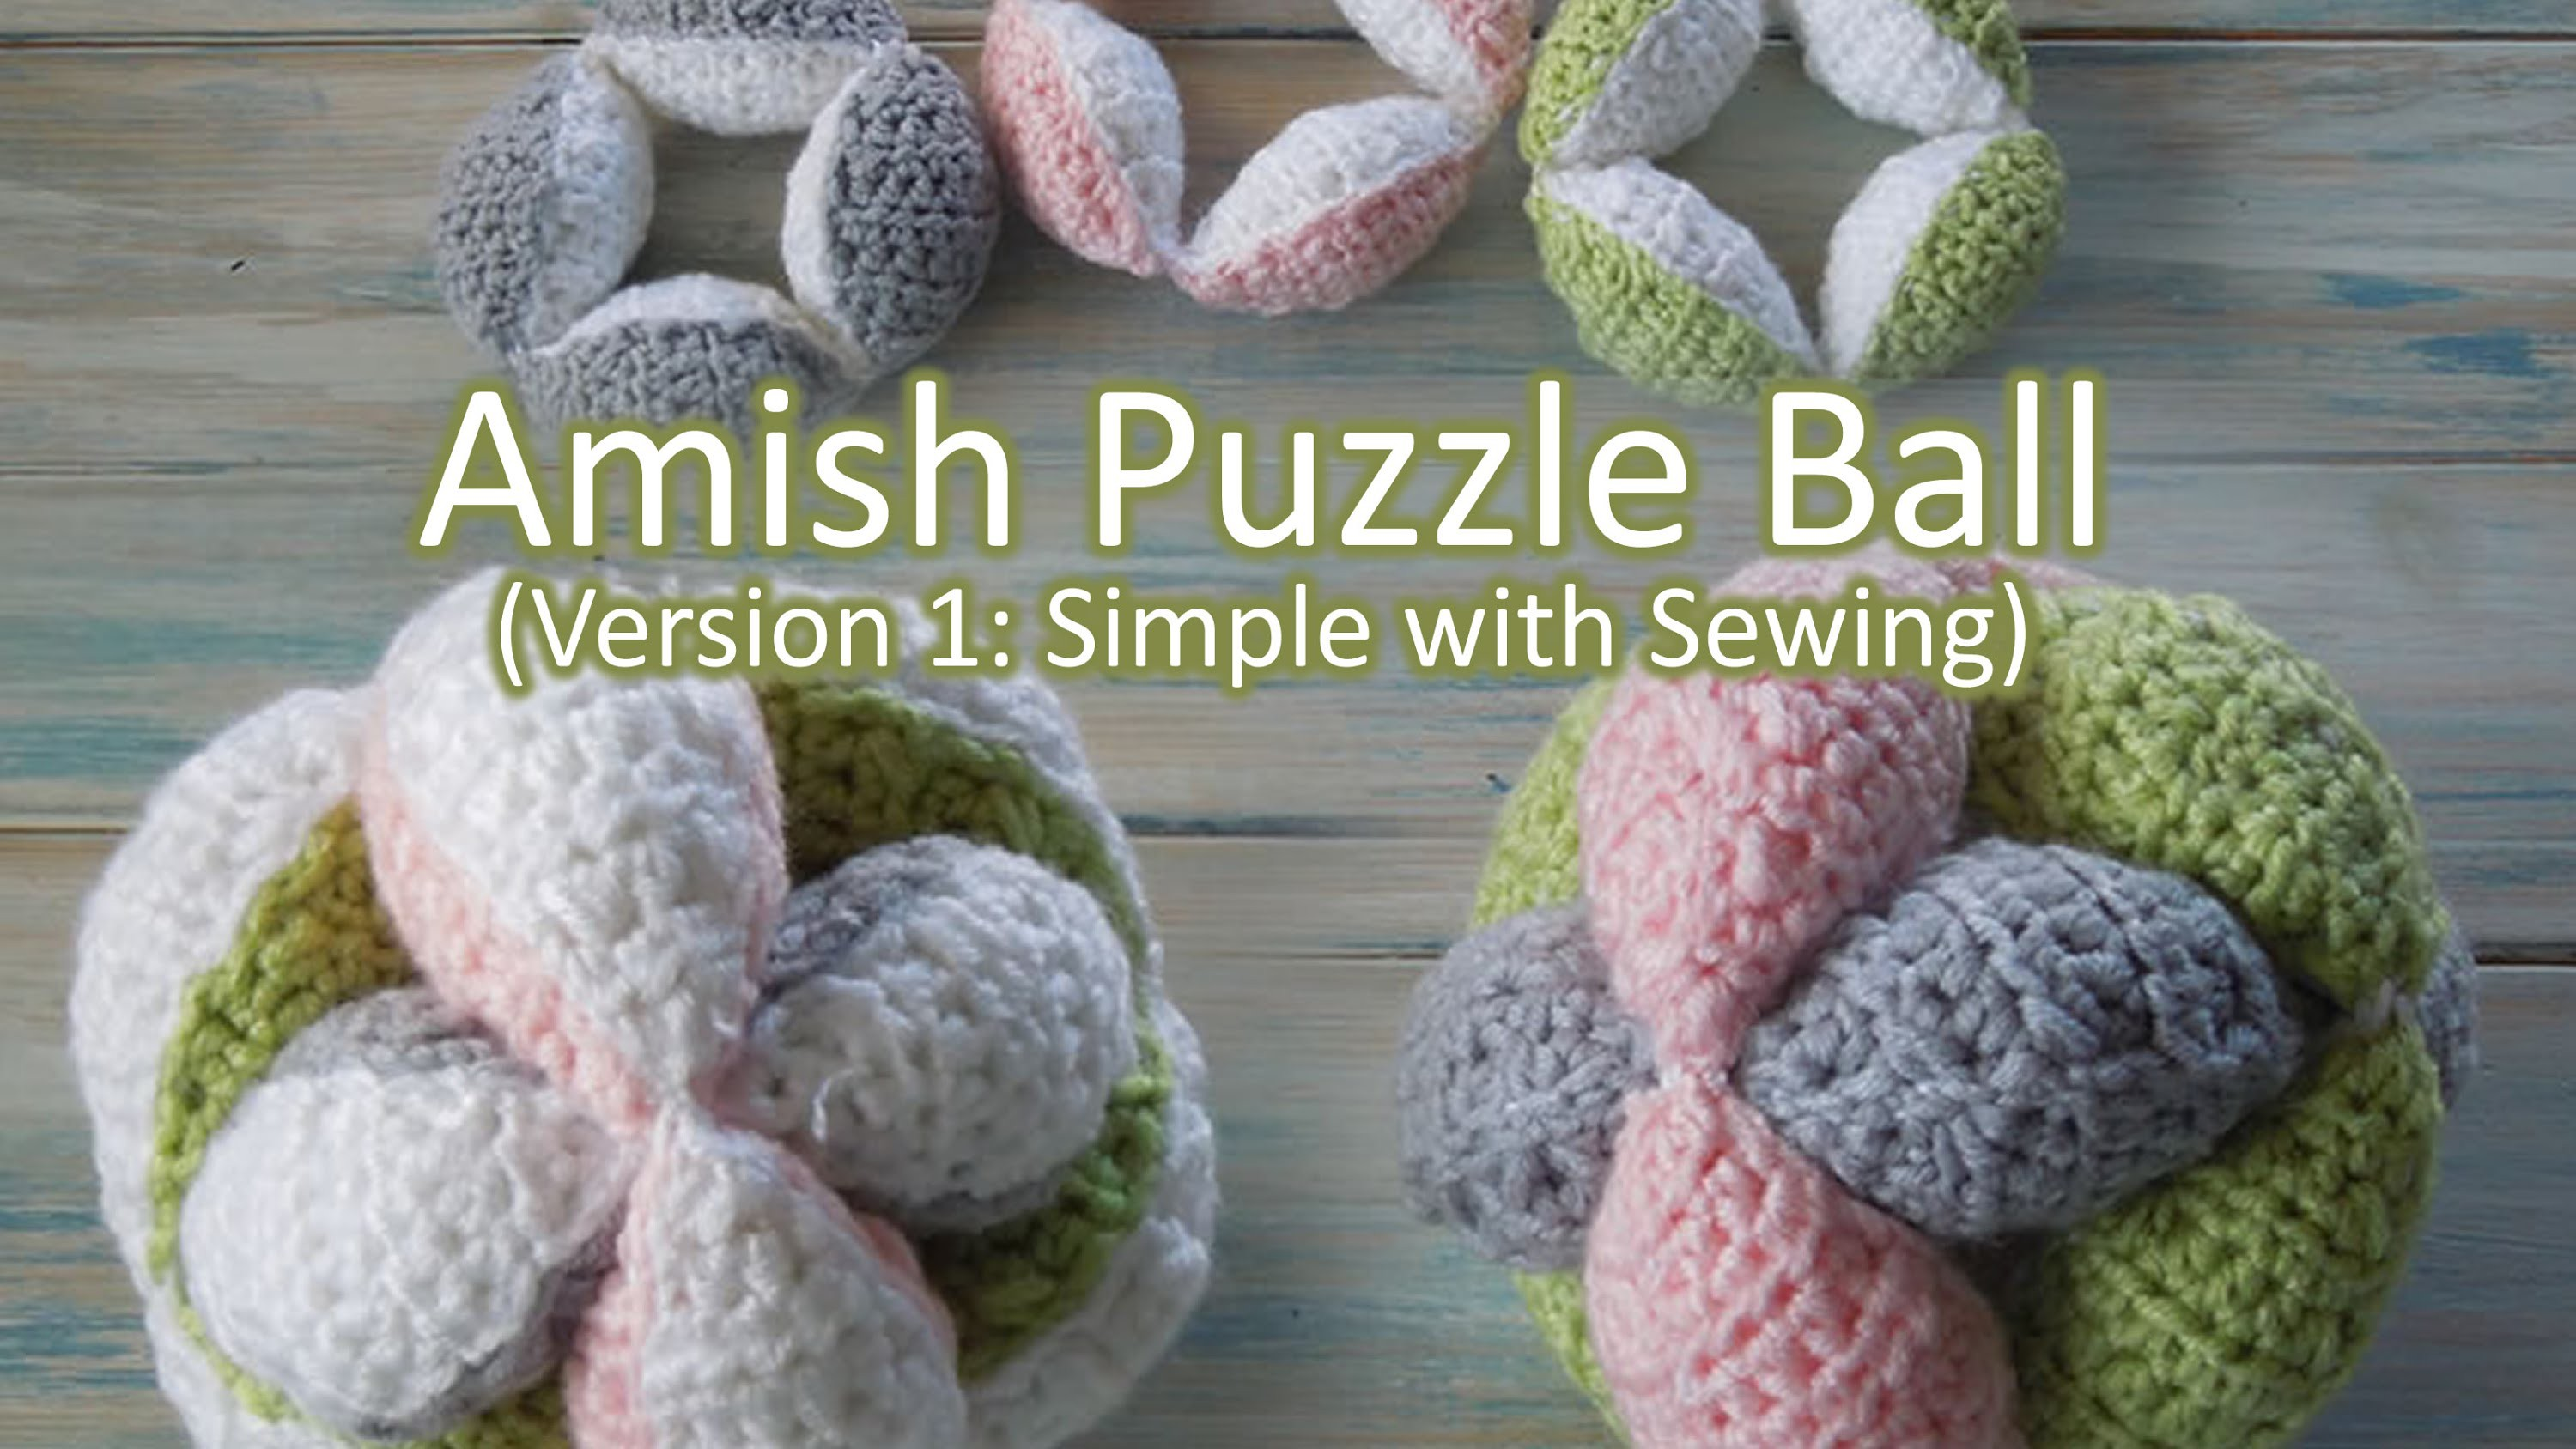 (crochet) How To Crochet an Amish Puzzle Ball - Yarn Scrap Friday